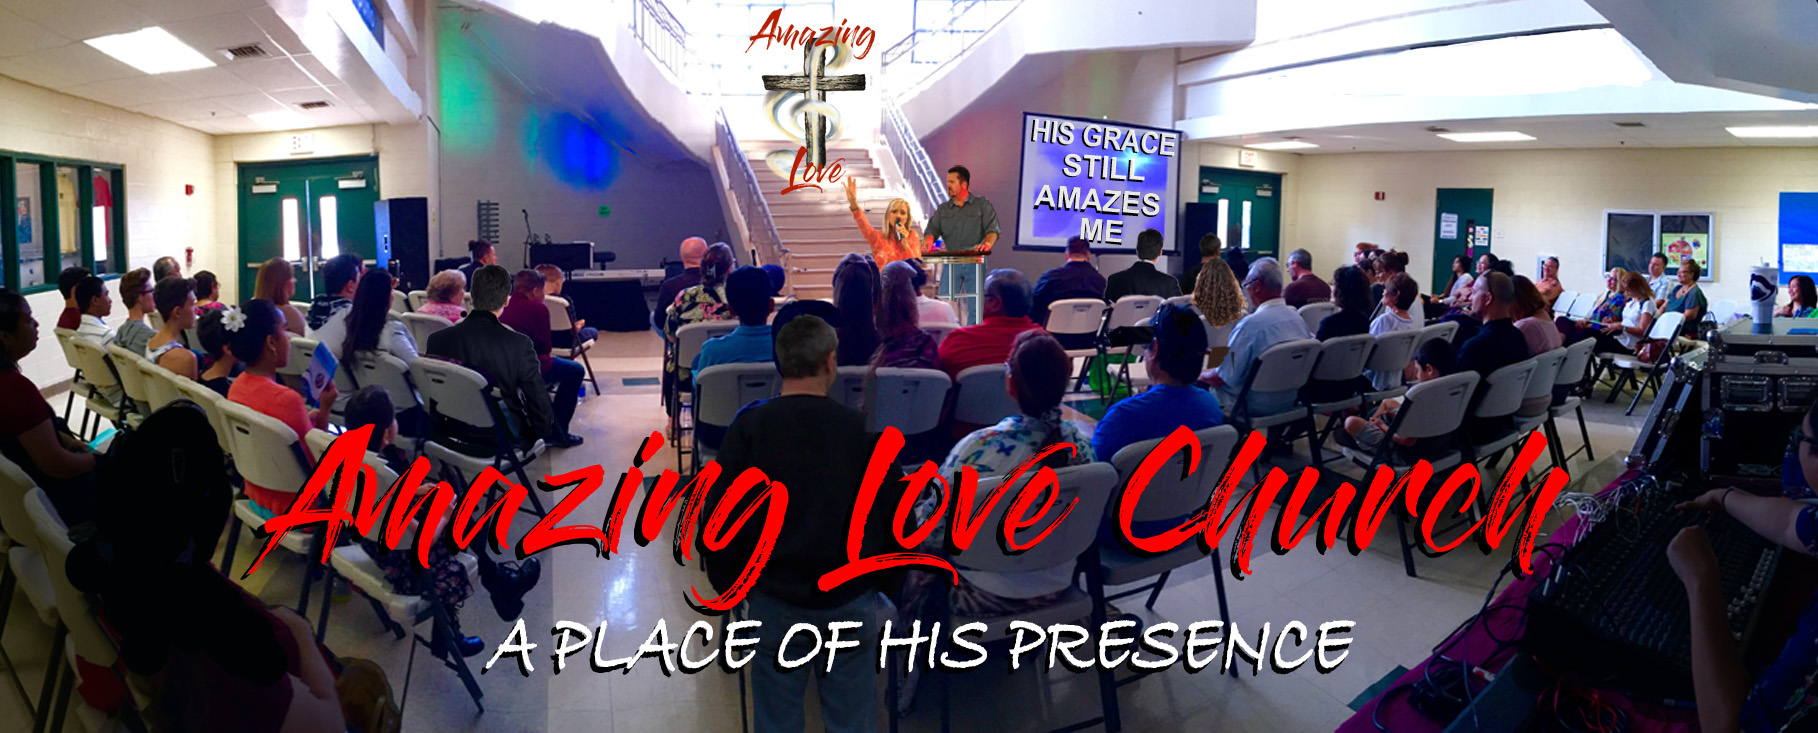 6-13-18 Amazing Love Church - Congregation pic .jpg